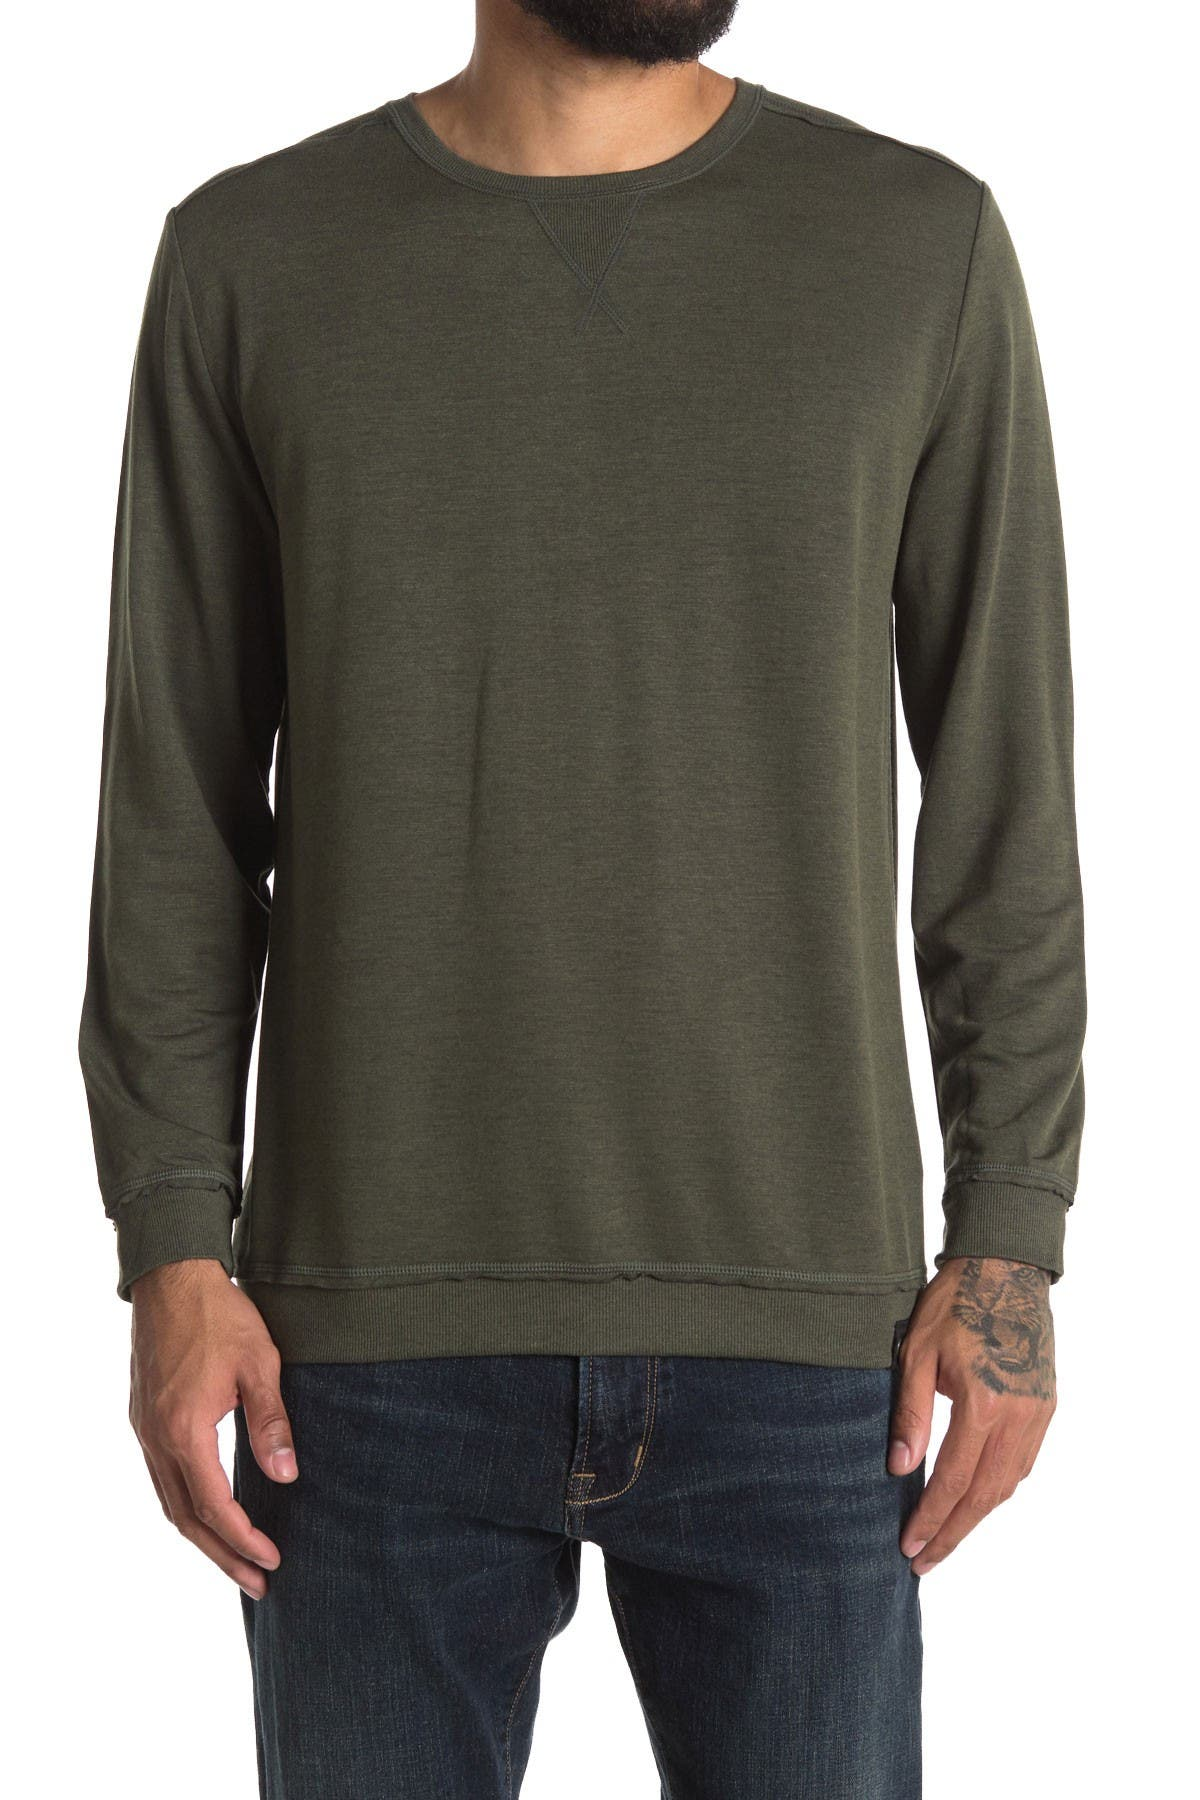 Image of Joe's Jeans Featherweight Pullover Sweatshirt